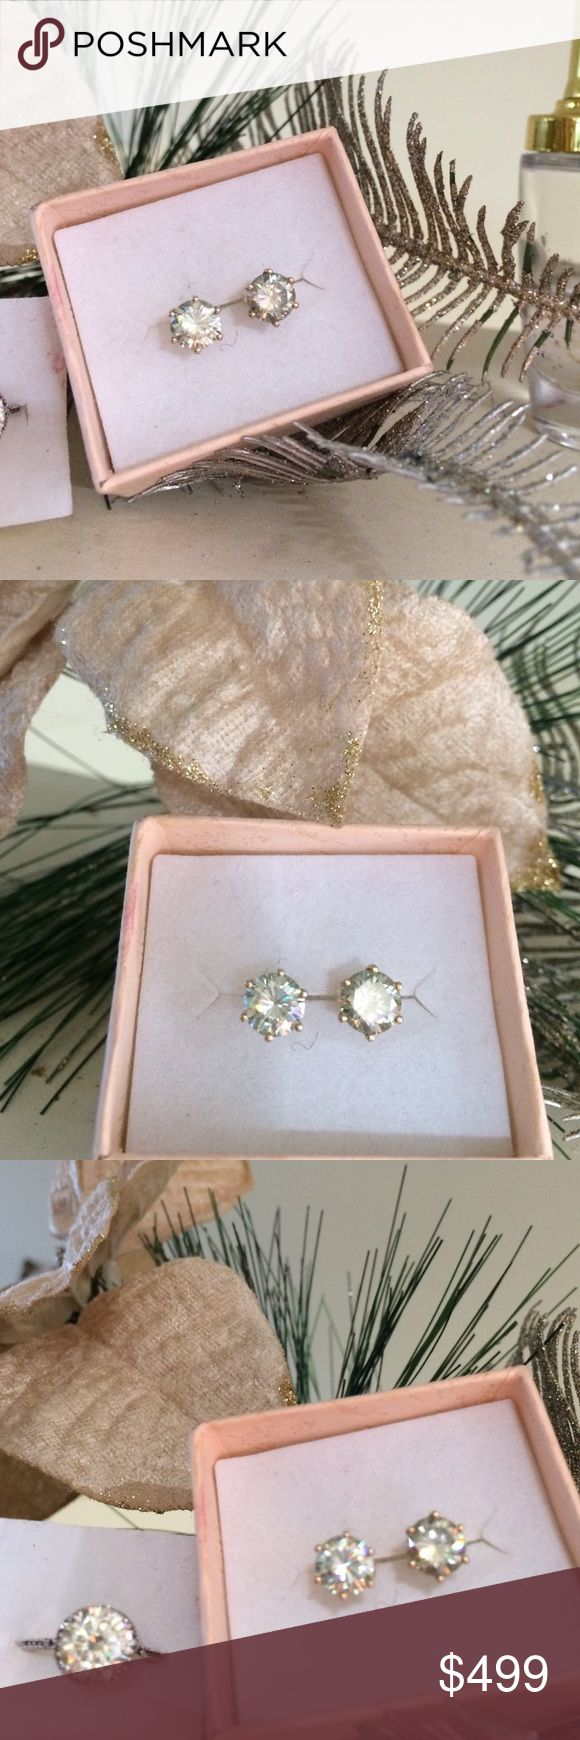 2.75ct  ✨MOISSANITE ✨14K Yellow GOLD STUD EARRINGS 2.75ct ROUND BRILLIANT CUT SI1 ✨MOISSANITE✨ SOLITAIRE STUD EARRINGS in a PERFECT 6-PRONG SETTING!  THEY ARE 14K YELLOW GOLD 👑 !! THESE ARE MY LARGEST MOISSANITE EARRINGS IN STOCK UNTIL EARLY NEXT YEAR!!  GET READY TO WEAR YOUR POLARIZED SUNGLASSES 😎 THEY ARE OVER THE TOP ON THE SPARKLE. FACTOR GAUGE 🌟! my design  Jewelry Earrings